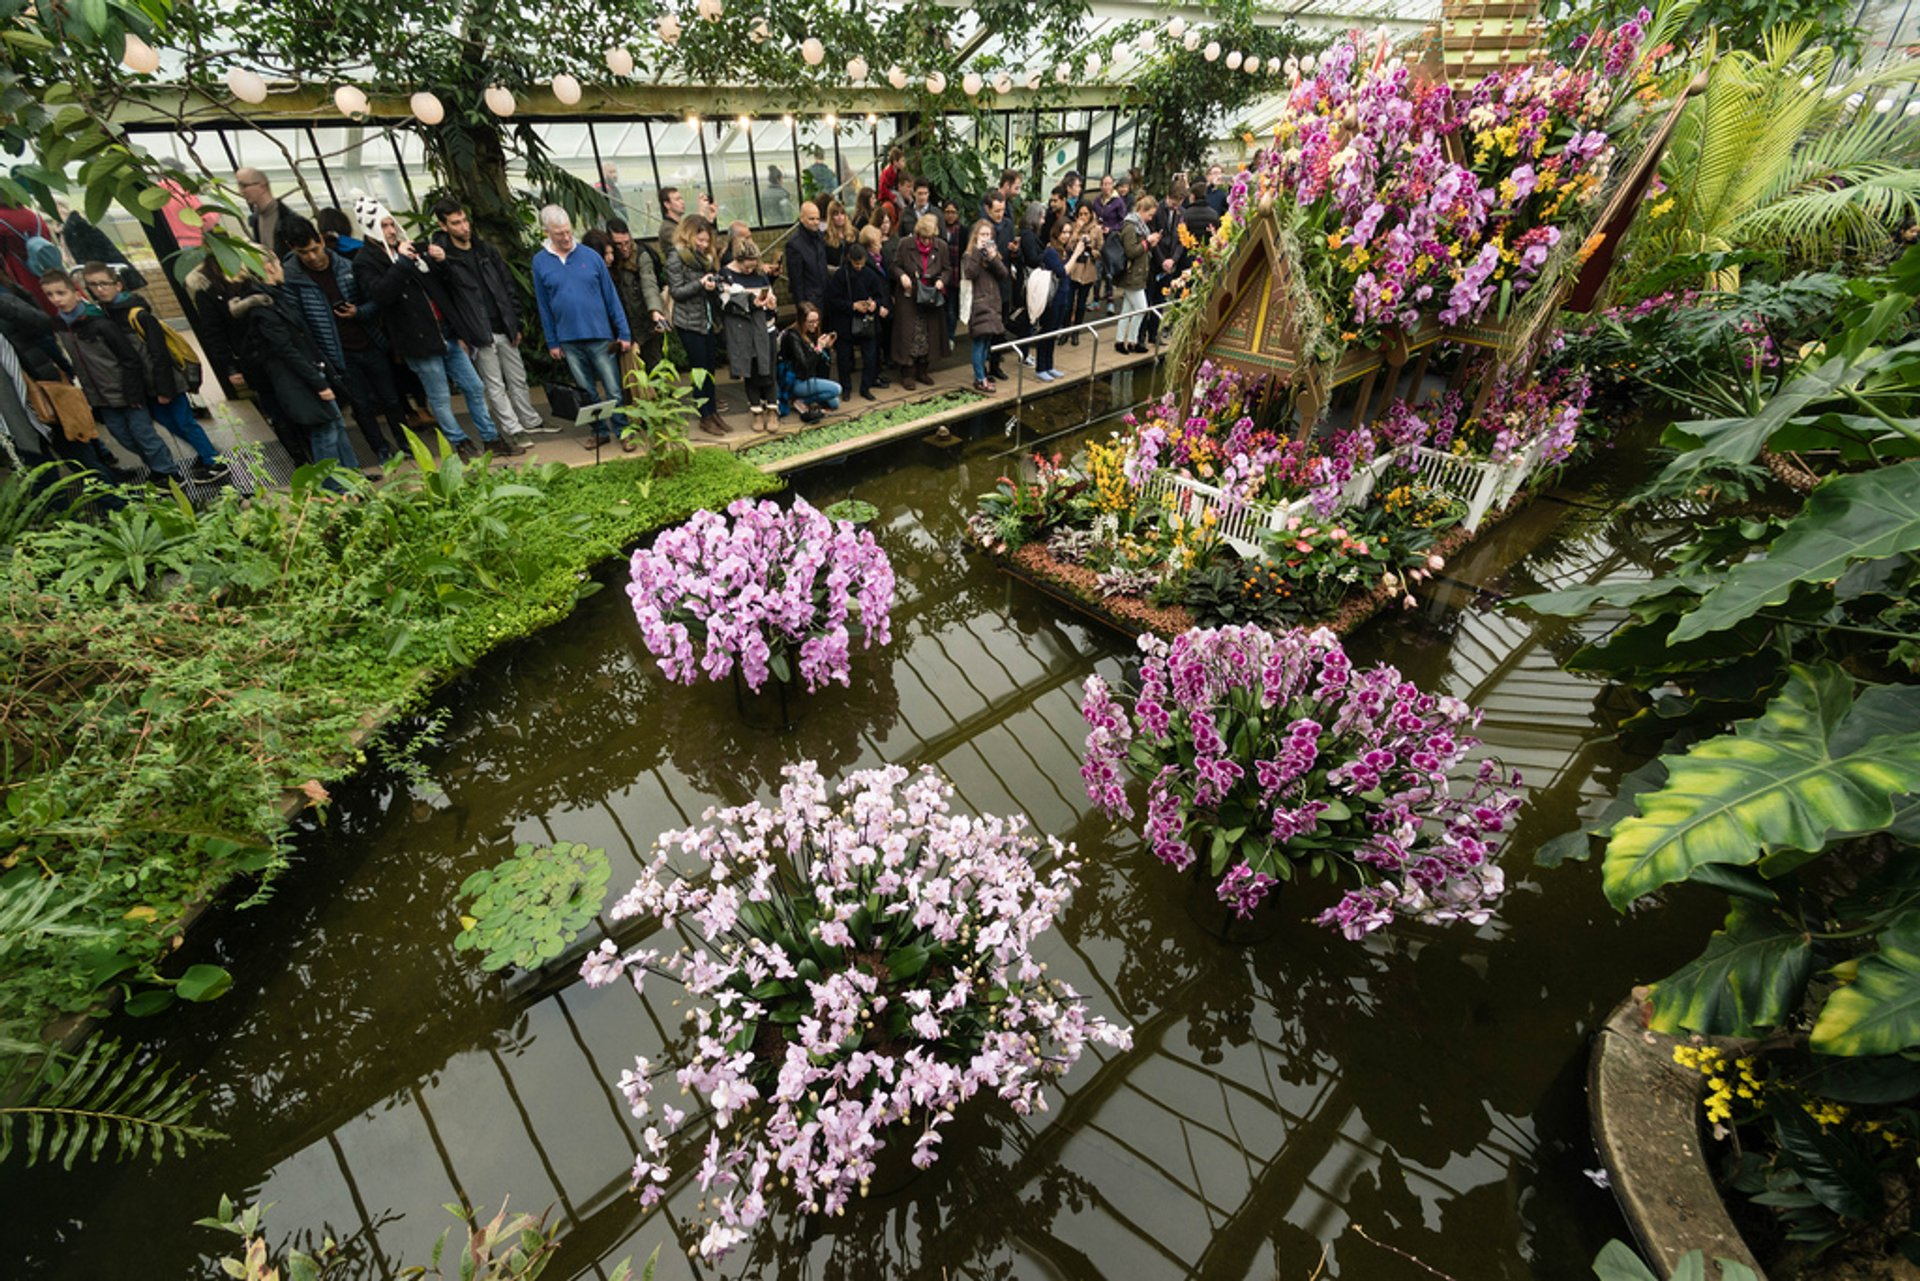 Orchids Festival at Kew Gardens in London 2020 - Best Time